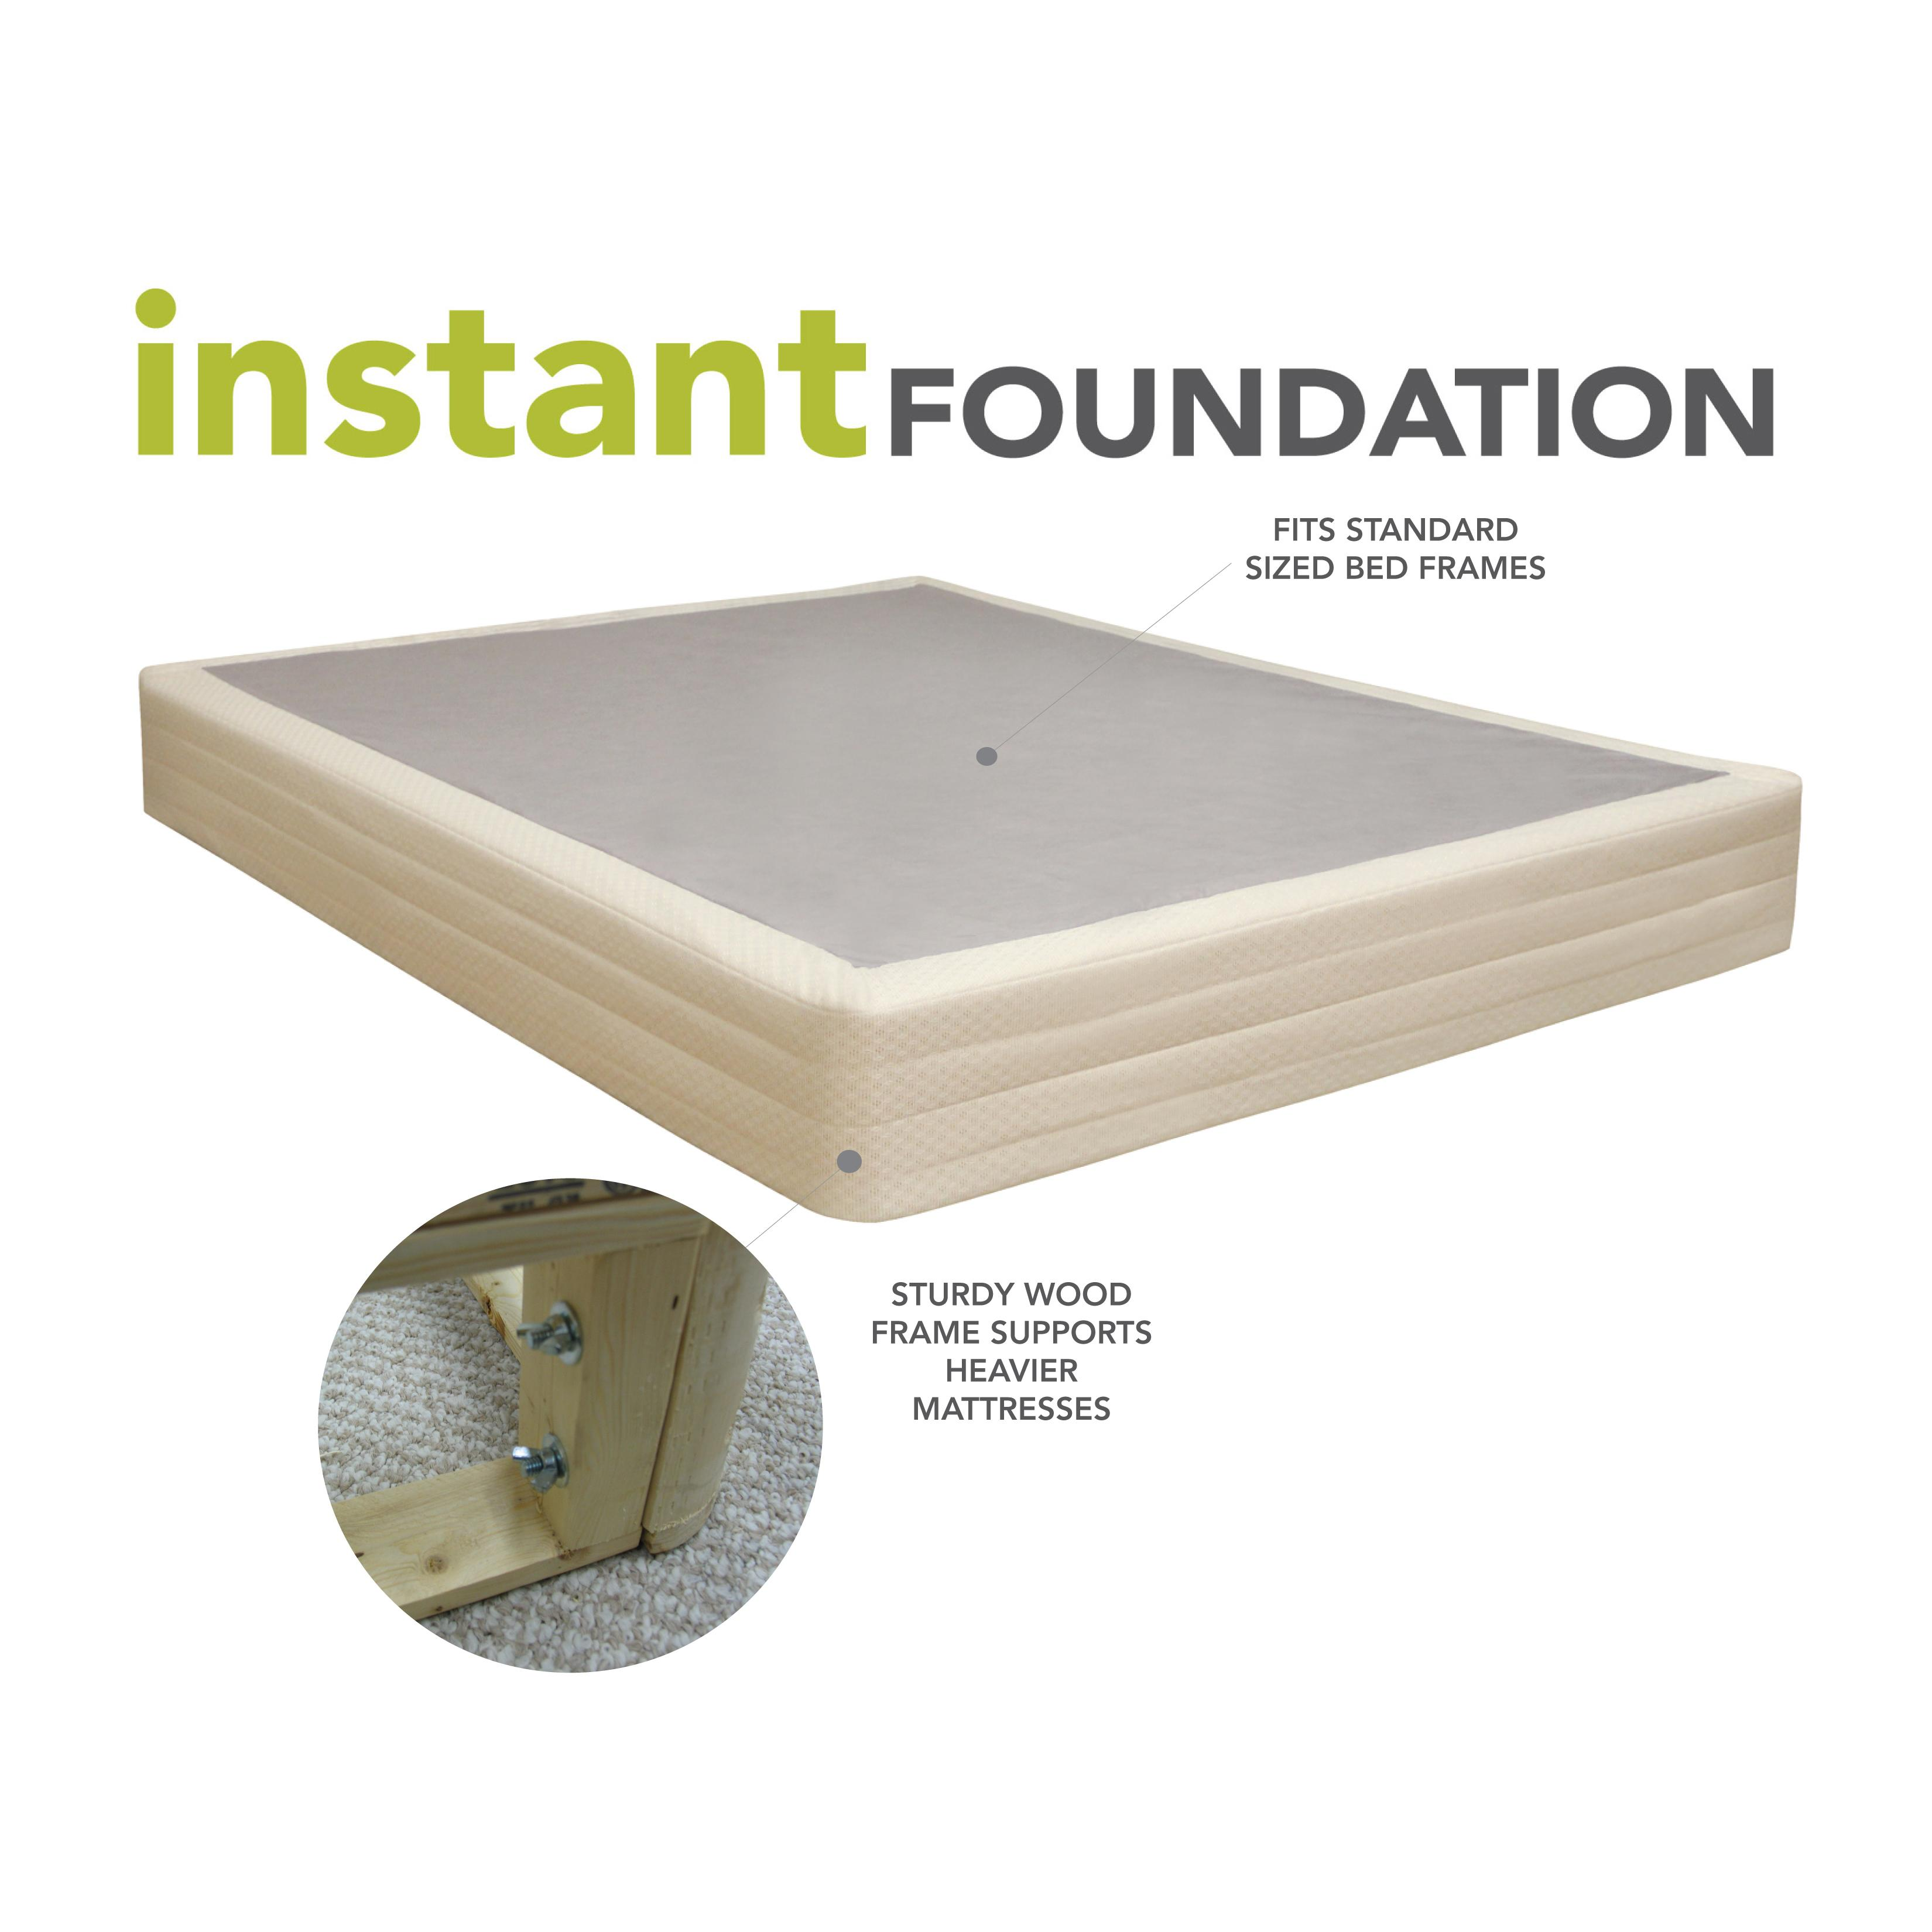 Traditional Mattress Vs Memory Foam Classic Brands Instant Foundation for Bed Mattress, Easy to Assemble ...